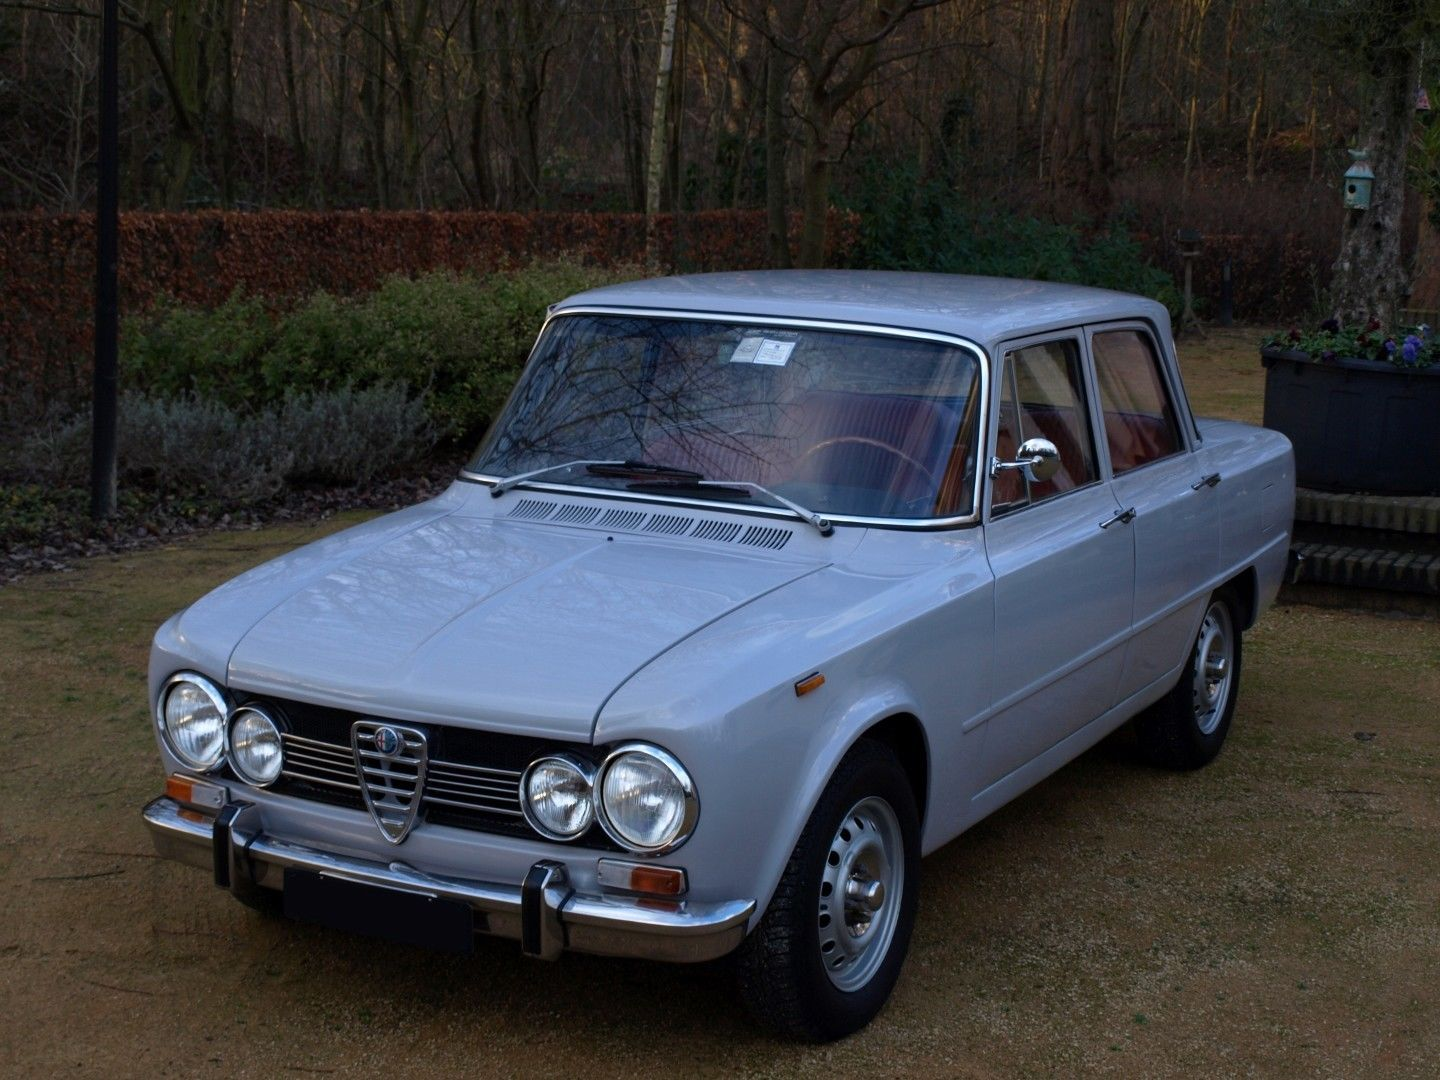 1974 alfa romeo giulia super 1300 for sale - Alfa romeo coupe for sale ...